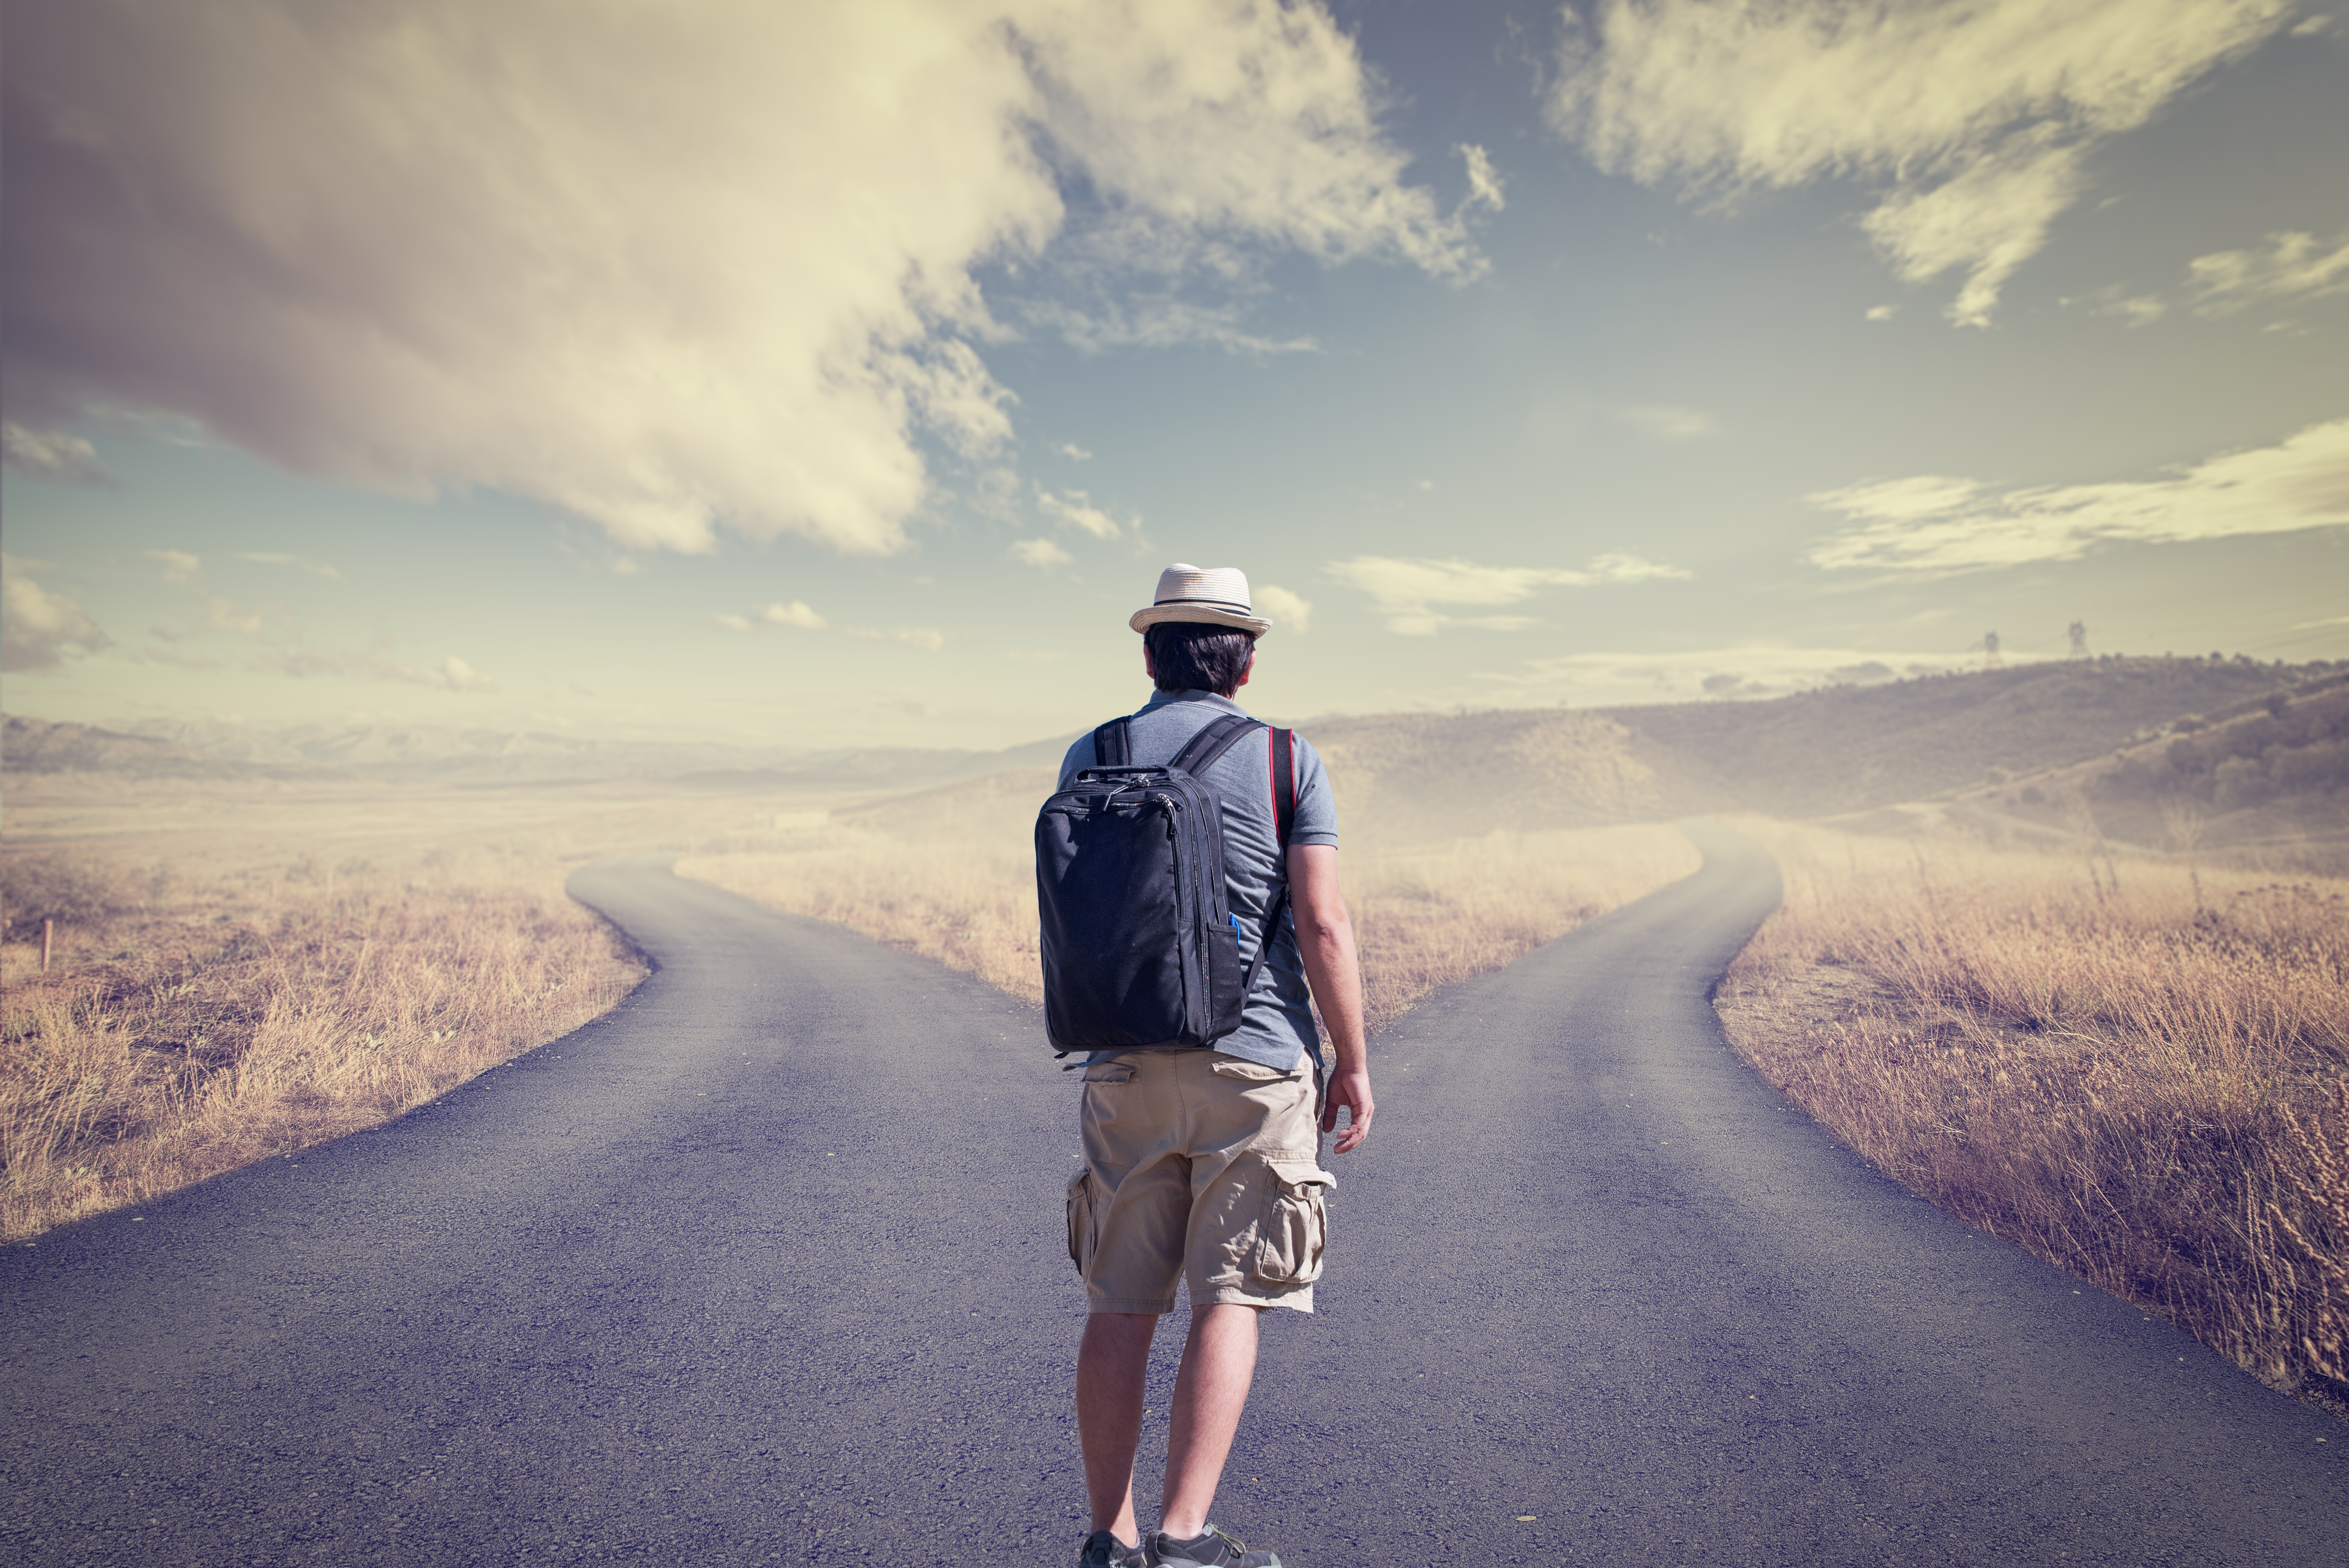 8 Easy Steps to Making Good Decisions for Your Goals and Dreams